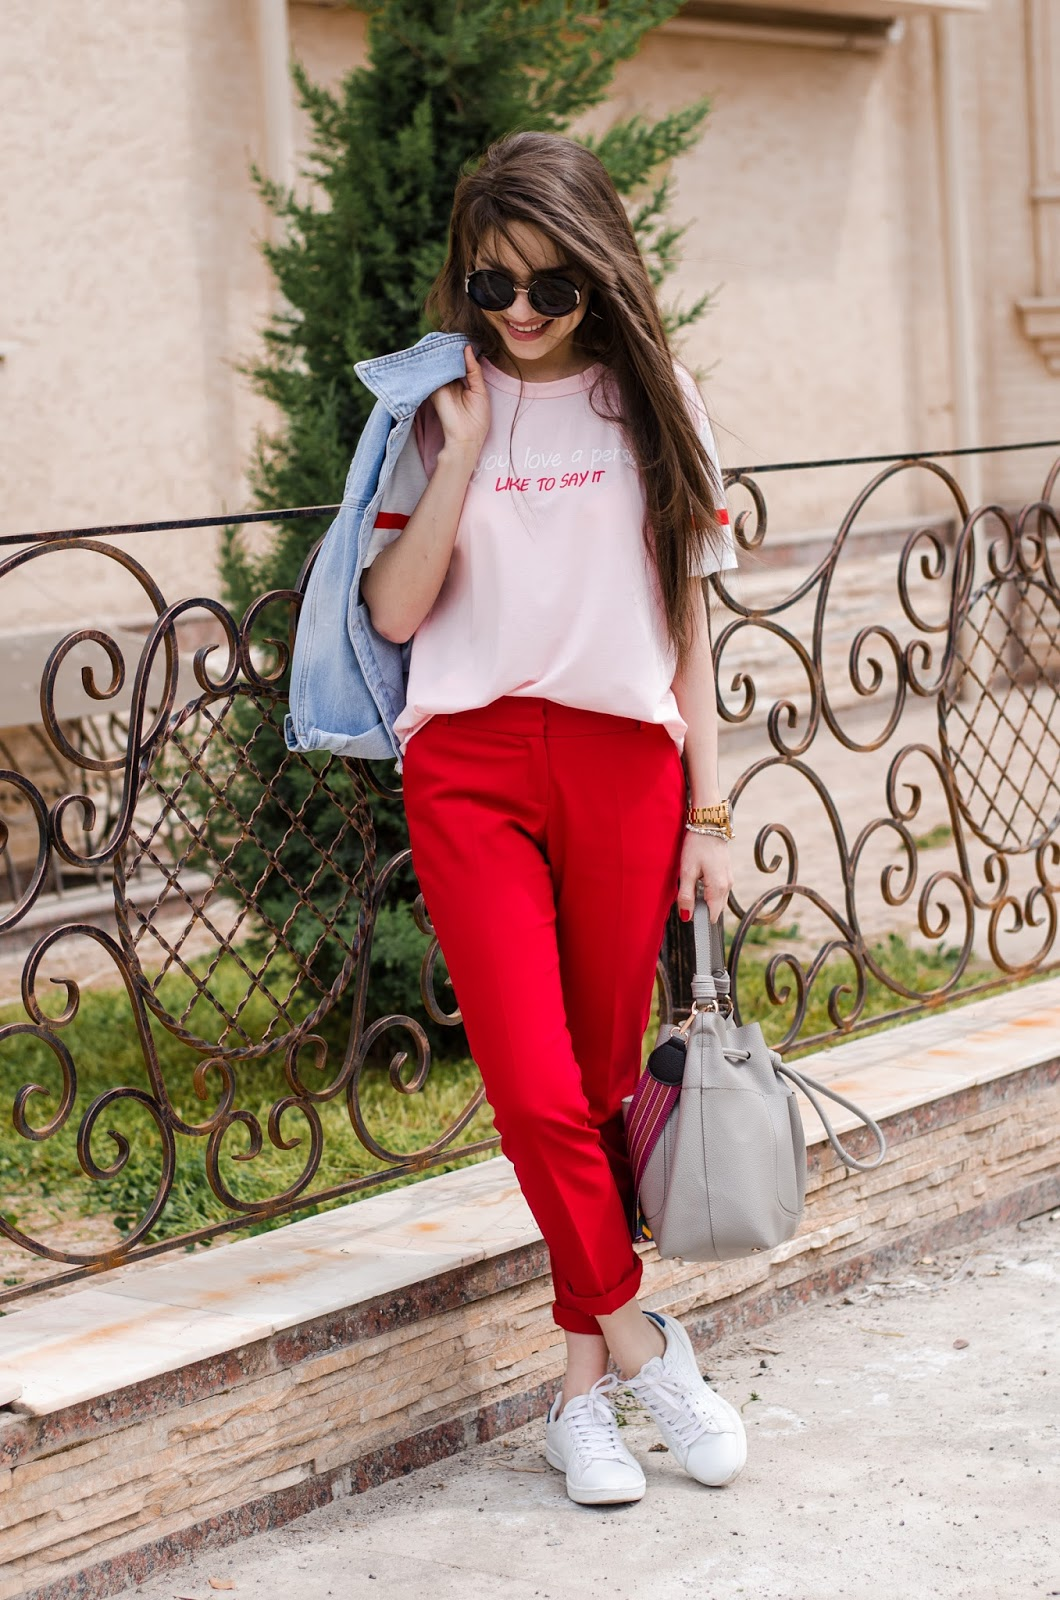 fashion blogger diyorasnotes diyora beta casual outfit lookoftheday red pants pink t-shirt denim jacket white sneakers